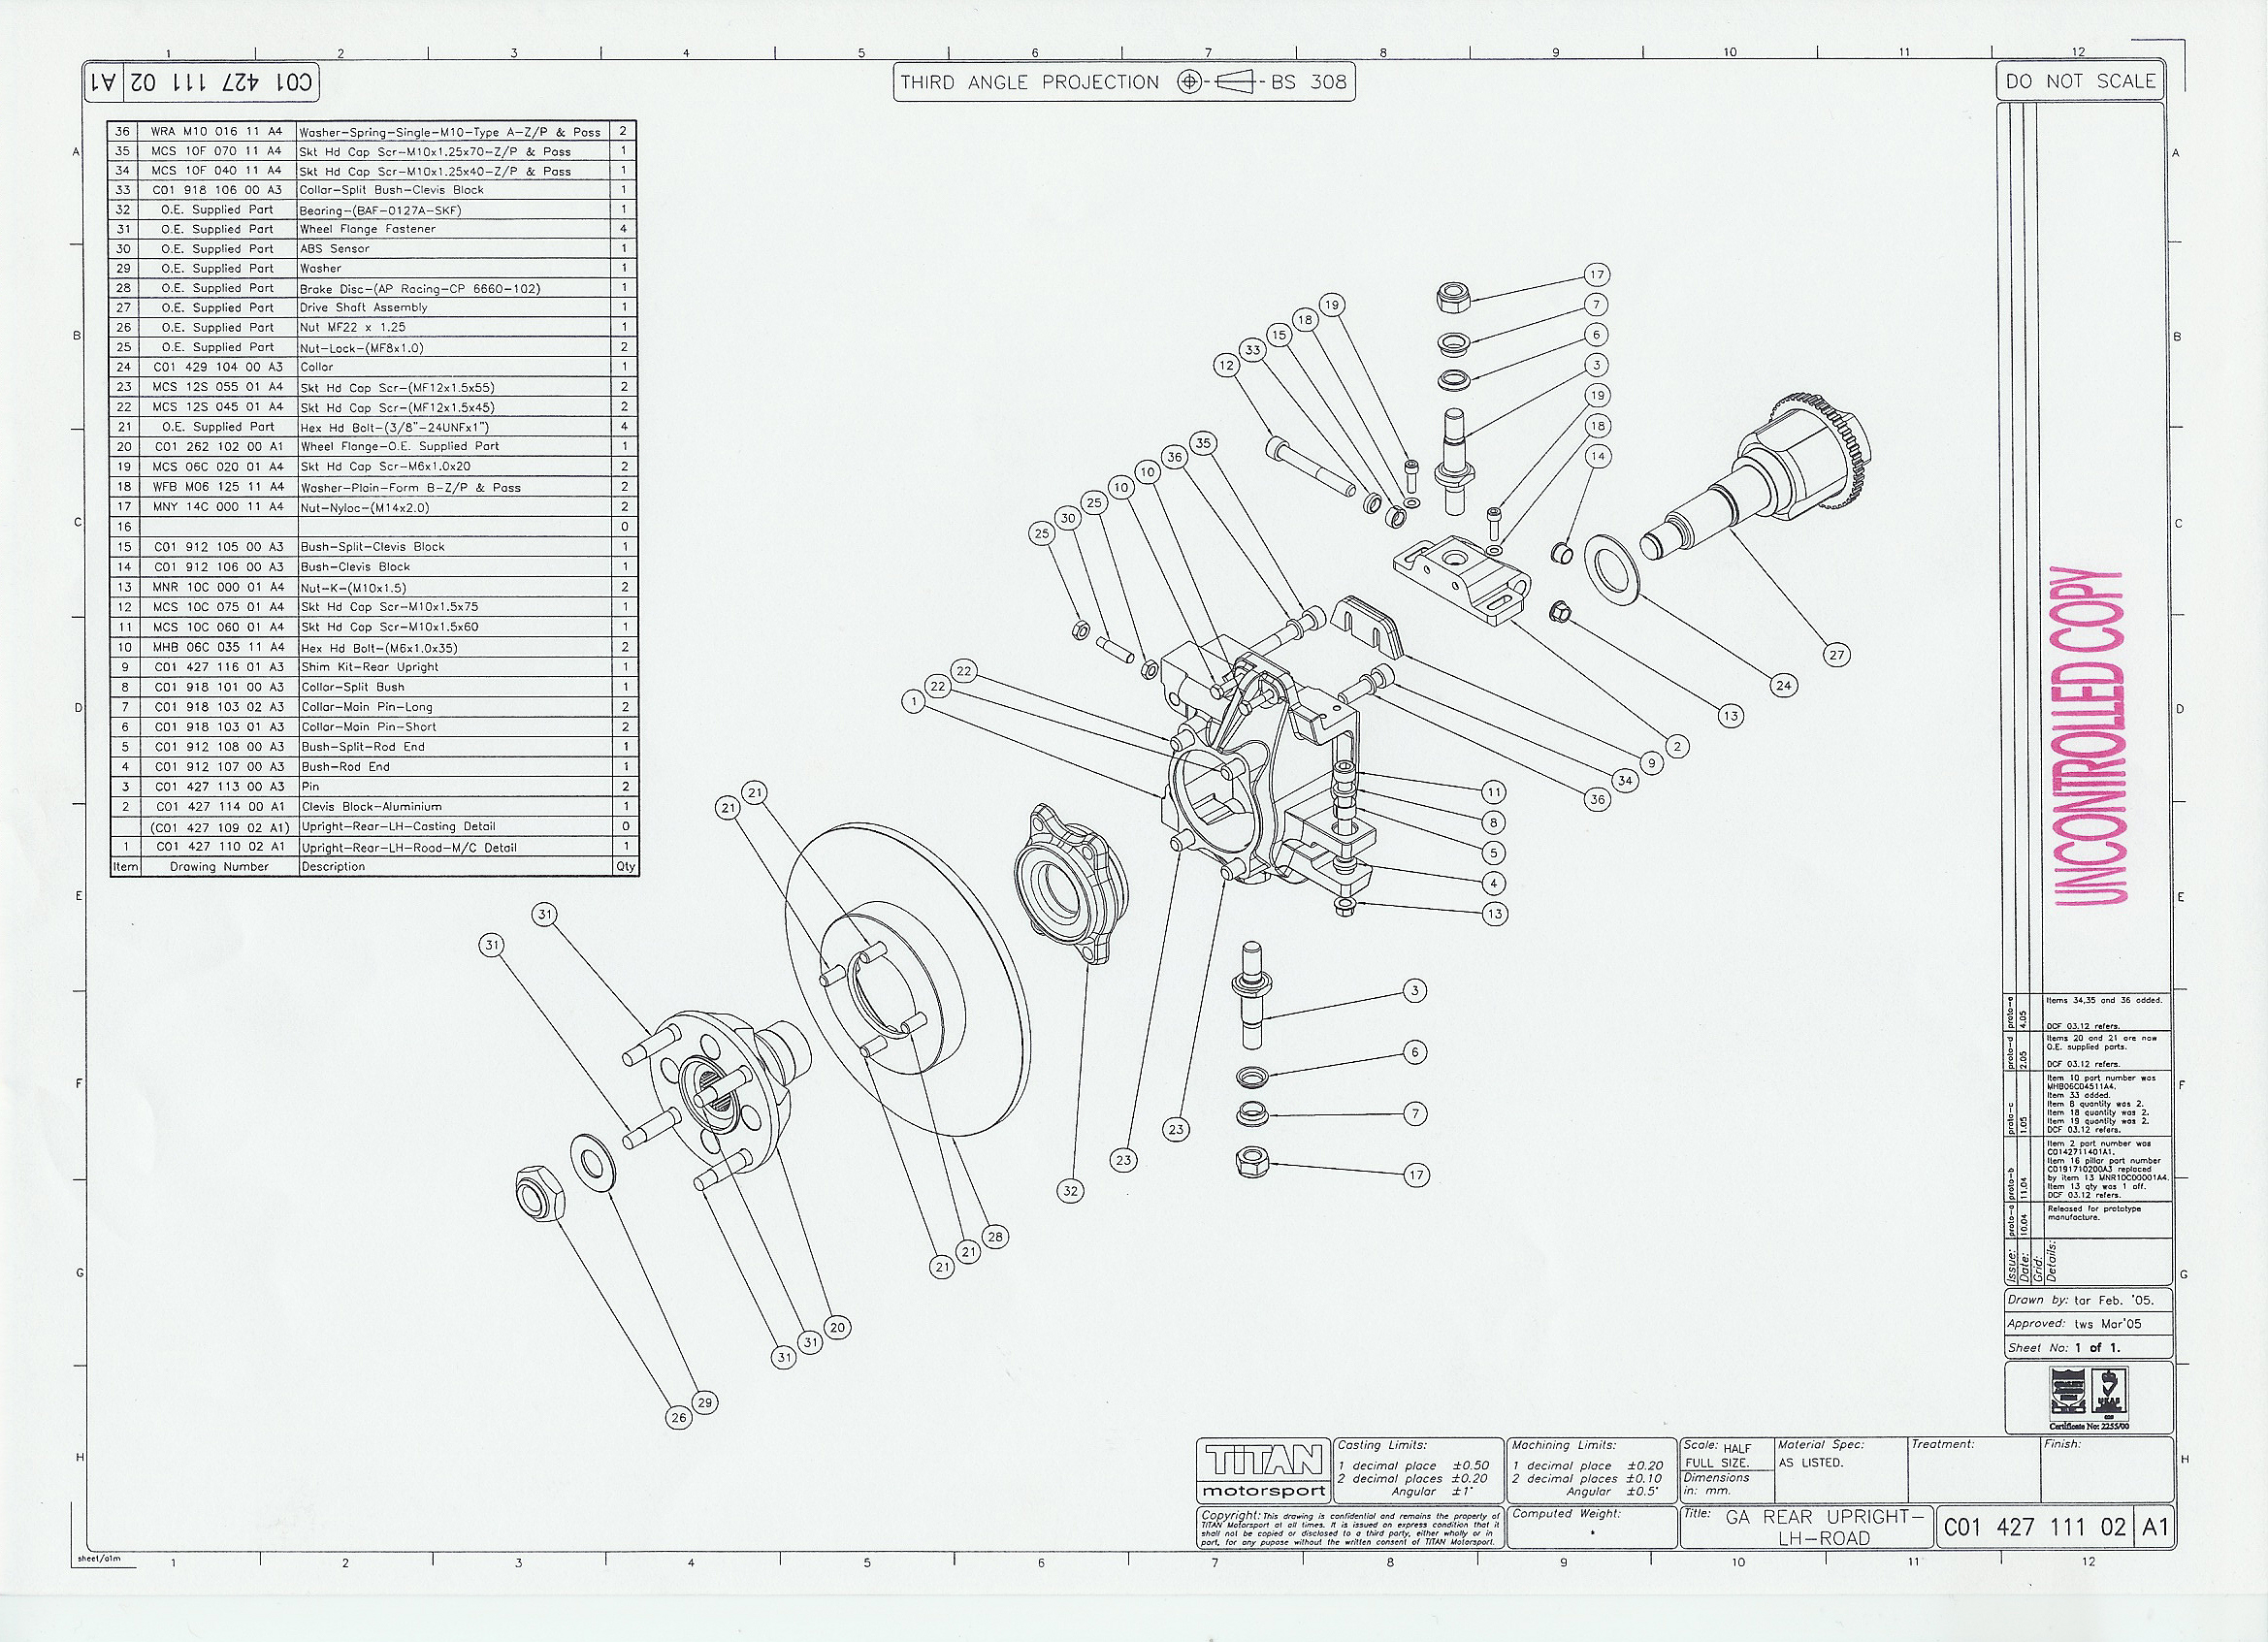 rear upright diagram links to other 7 resources caterham wiring diagram at mifinder.co